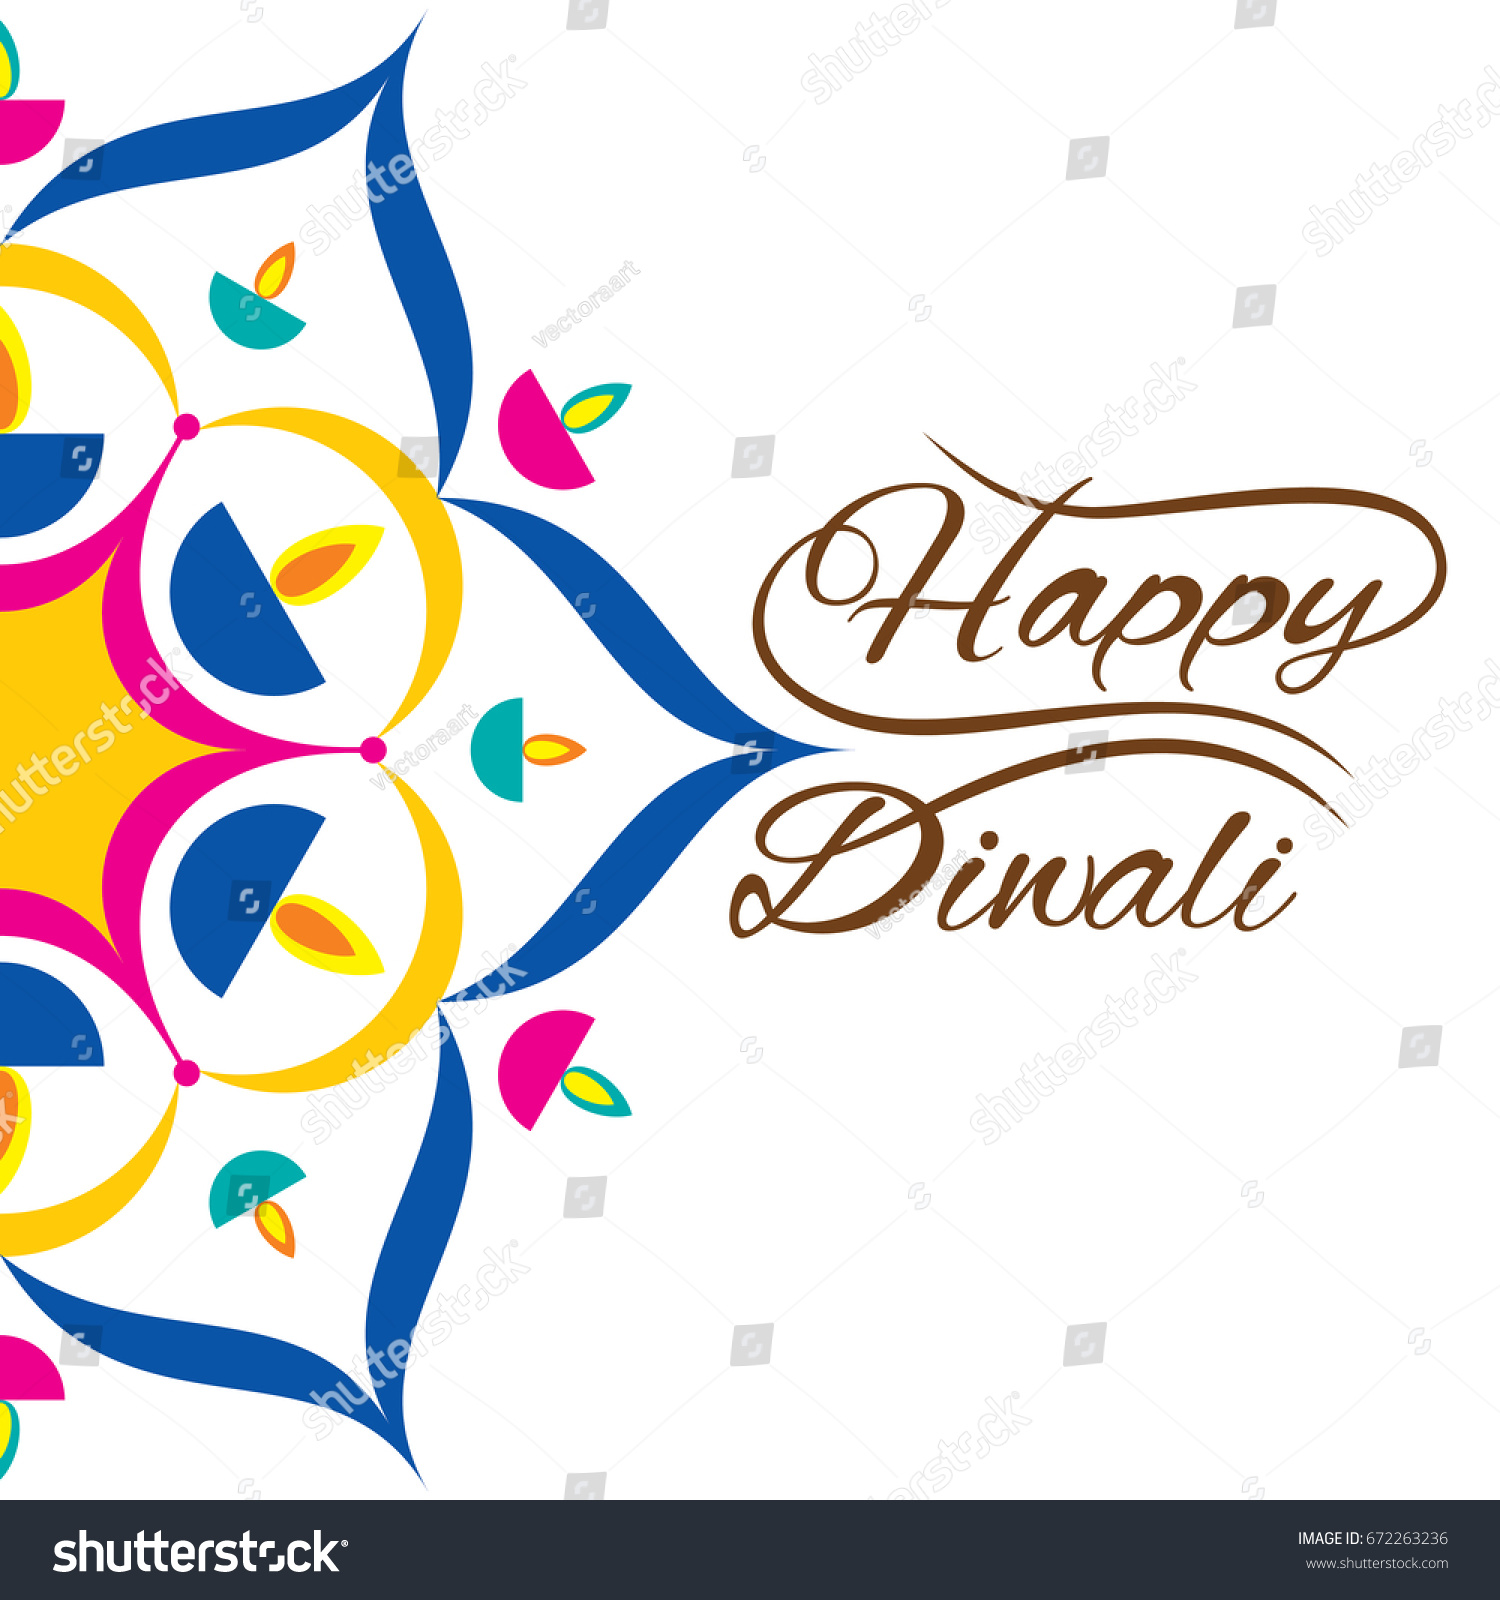 Creative beautiful diwali greeting card decorated stock vector creative beautiful diwali greeting card decorated with colorful diyas design m4hsunfo